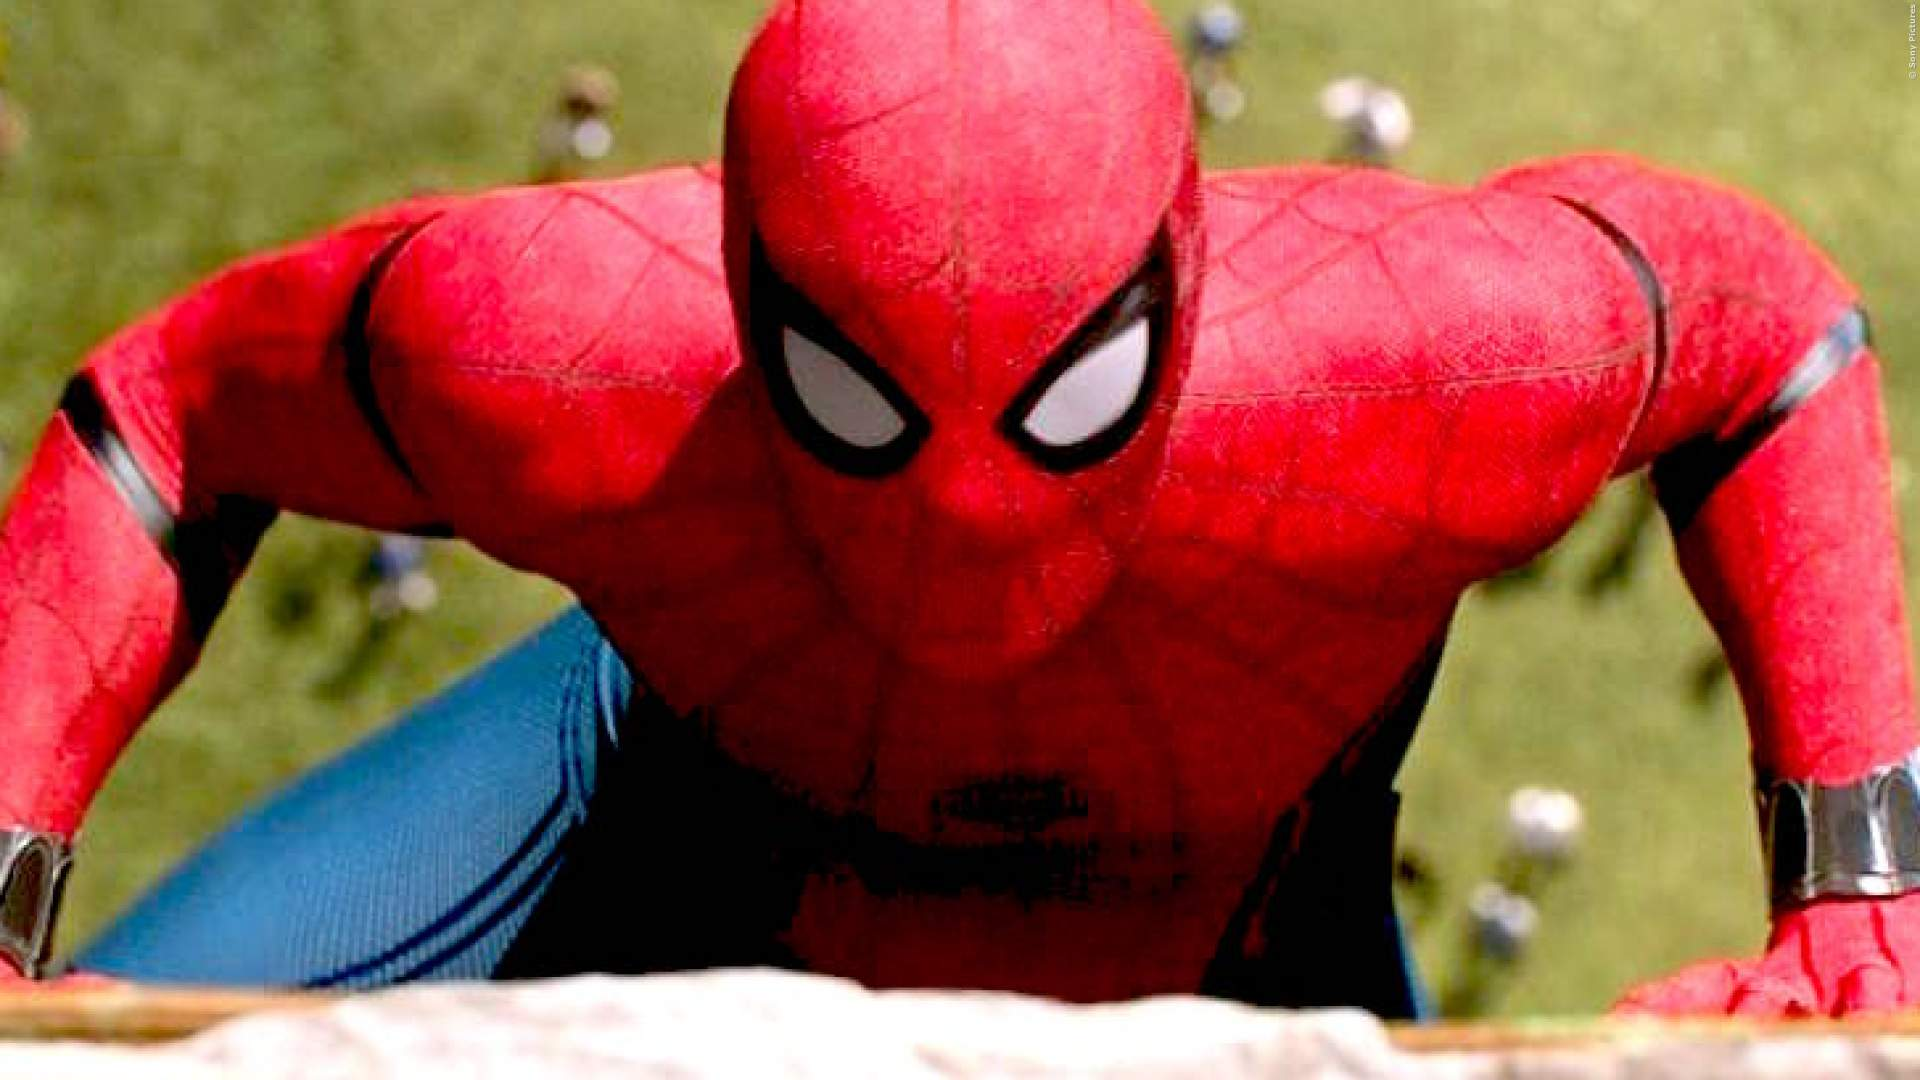 TRAILER: Spider-Man 2 - Far From Home